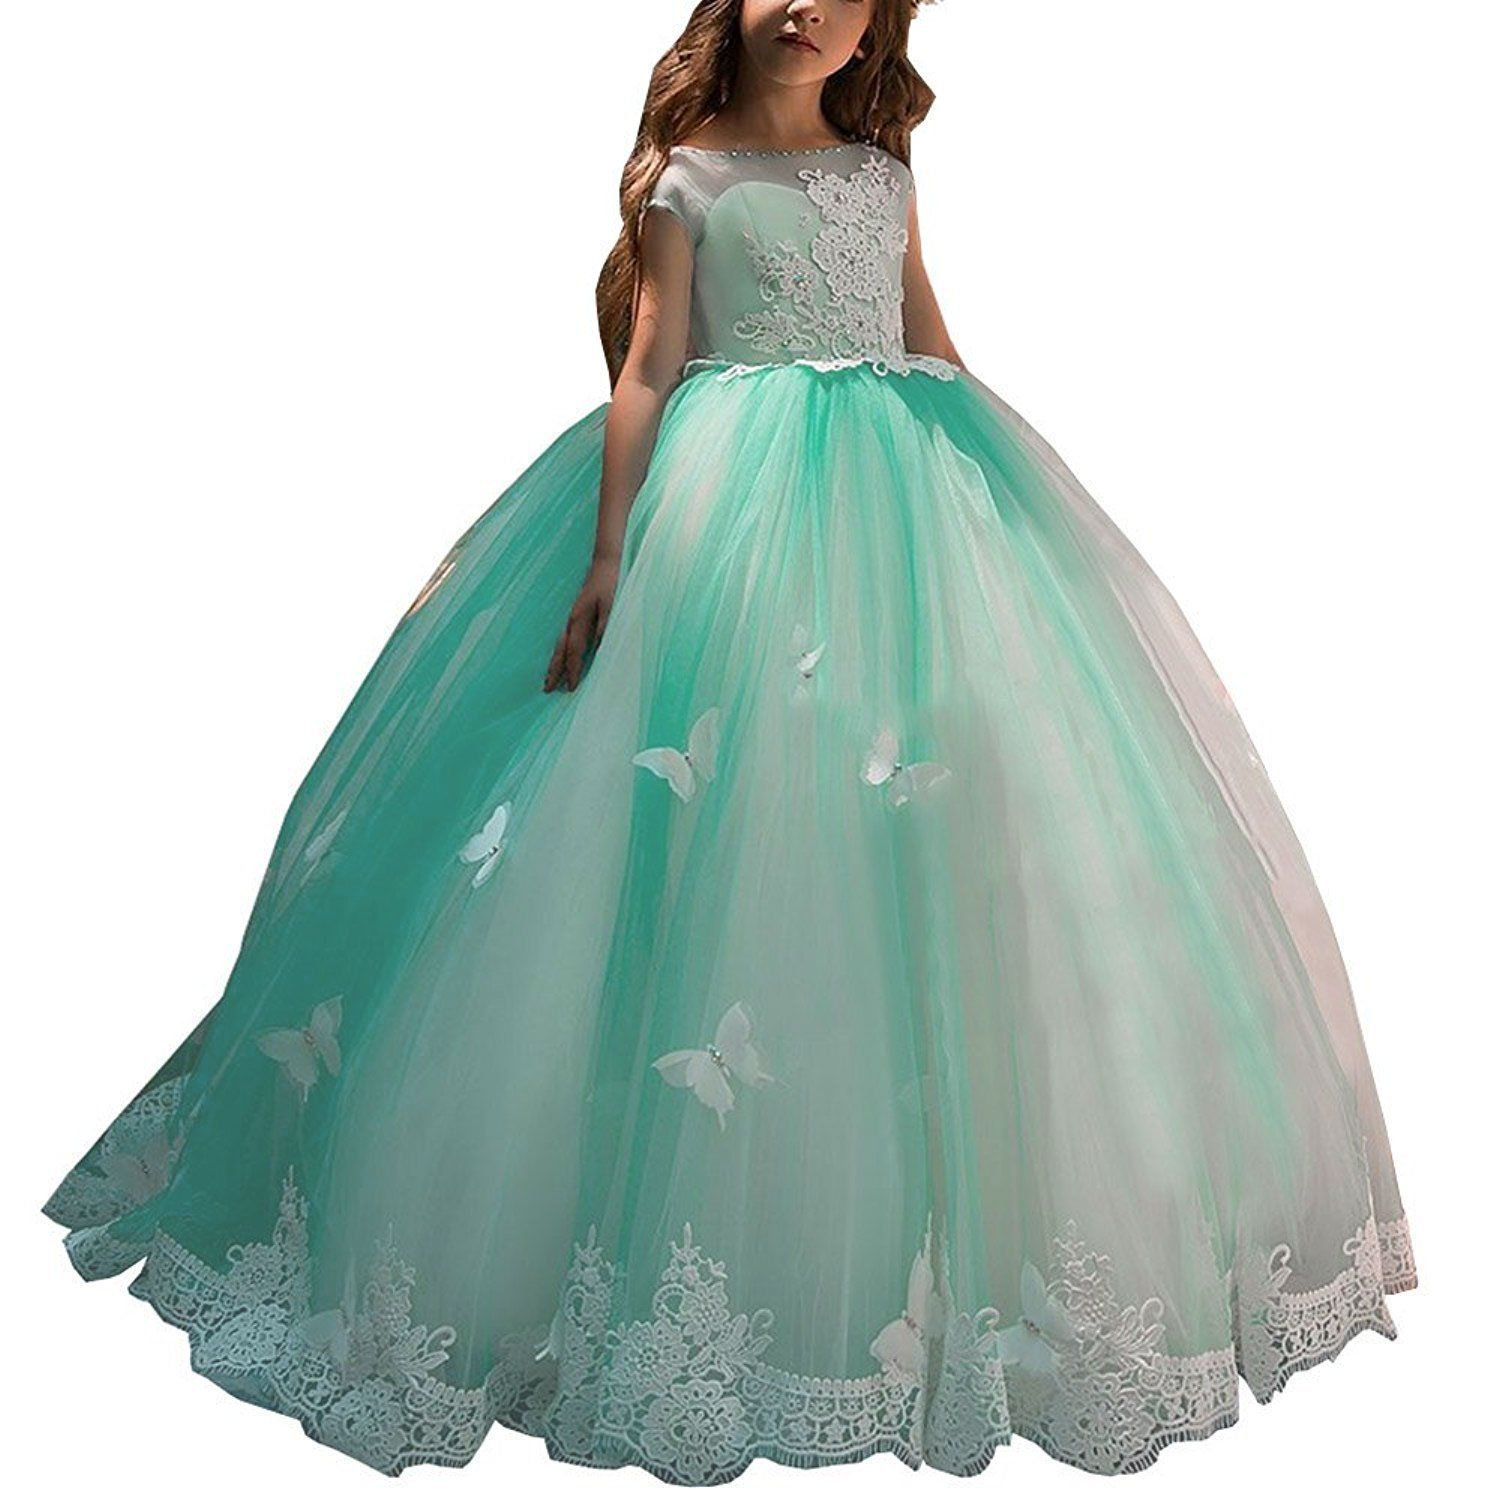 Gzcdress Puffy Kids Prom Pageant Dresses Green Long Girls Party Ball Gowns Cap Sleeves Lace Butterfly 43 Gzc43